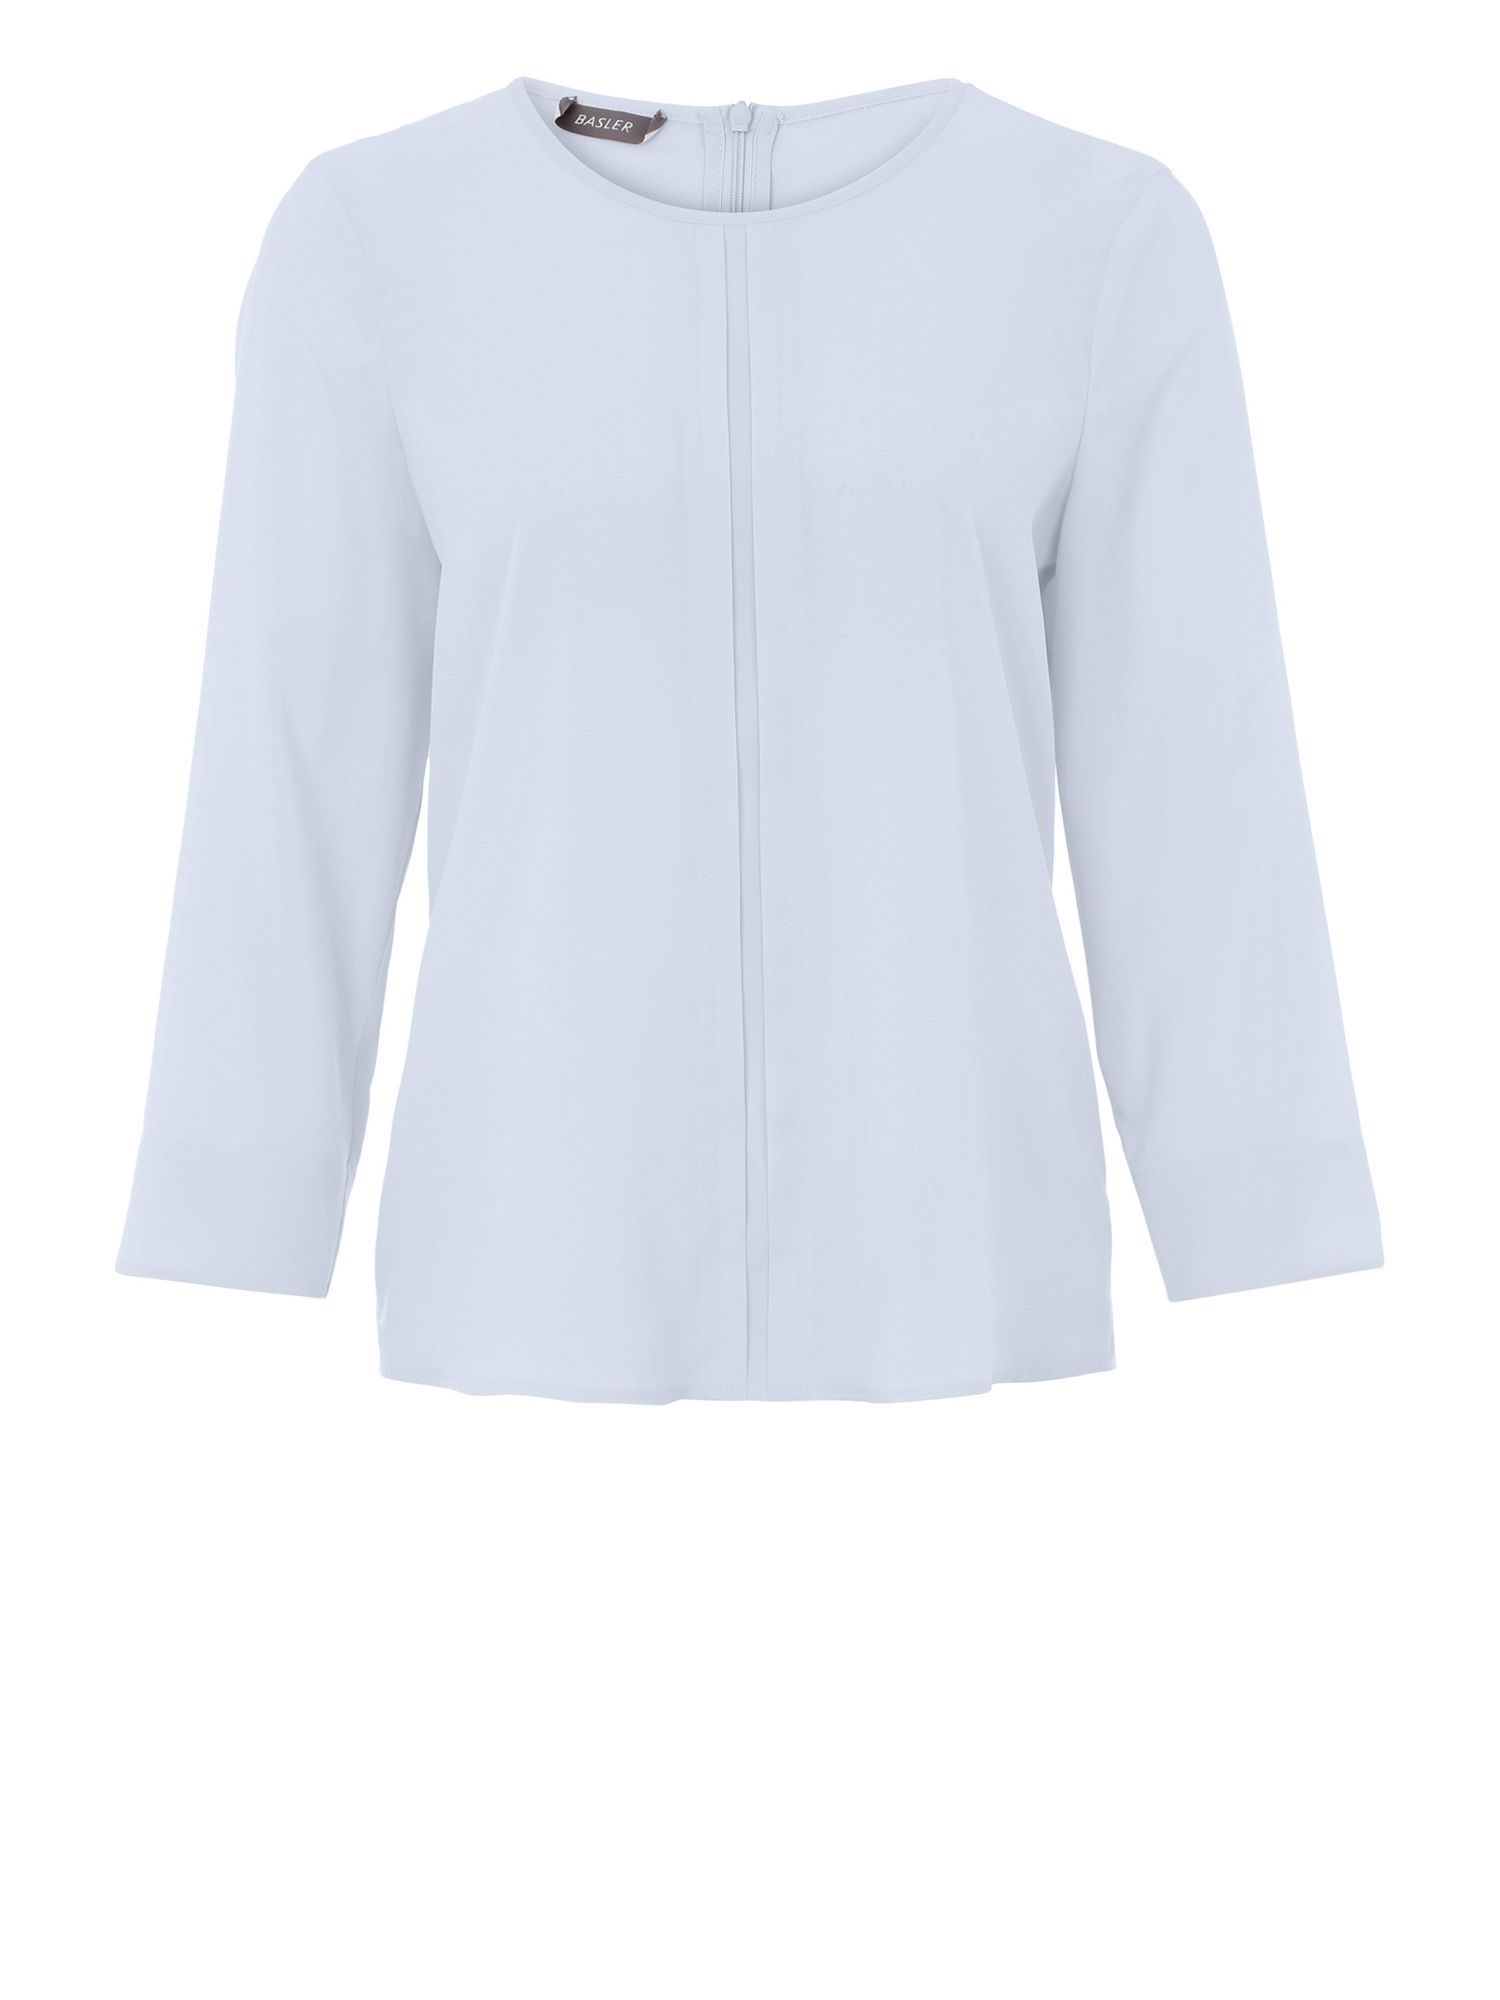 Basler Basler Blouse With Detail Down The Front, Blue